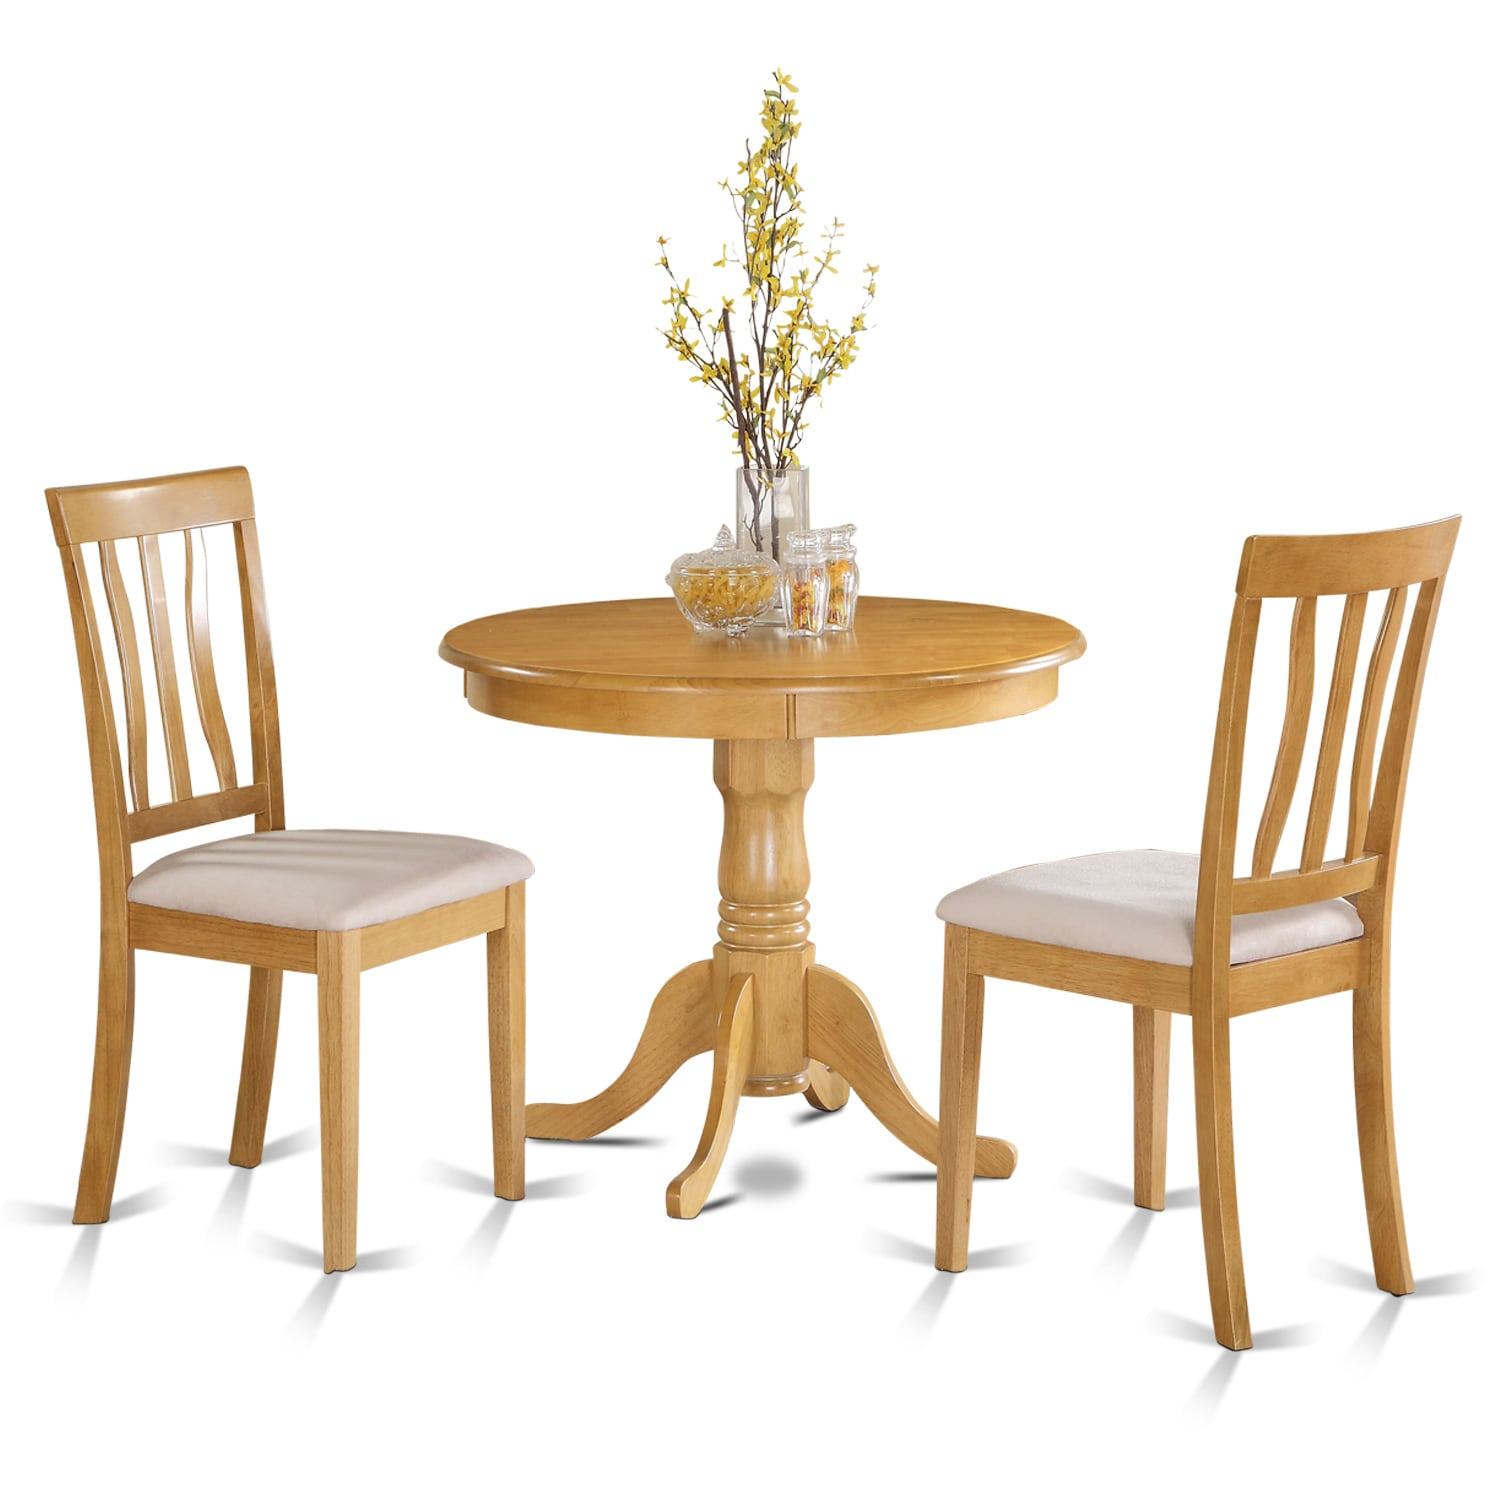 Little Kitchen Table: Oak Small Kitchen Table Plus 2 Chairs 3-piece Dining Set